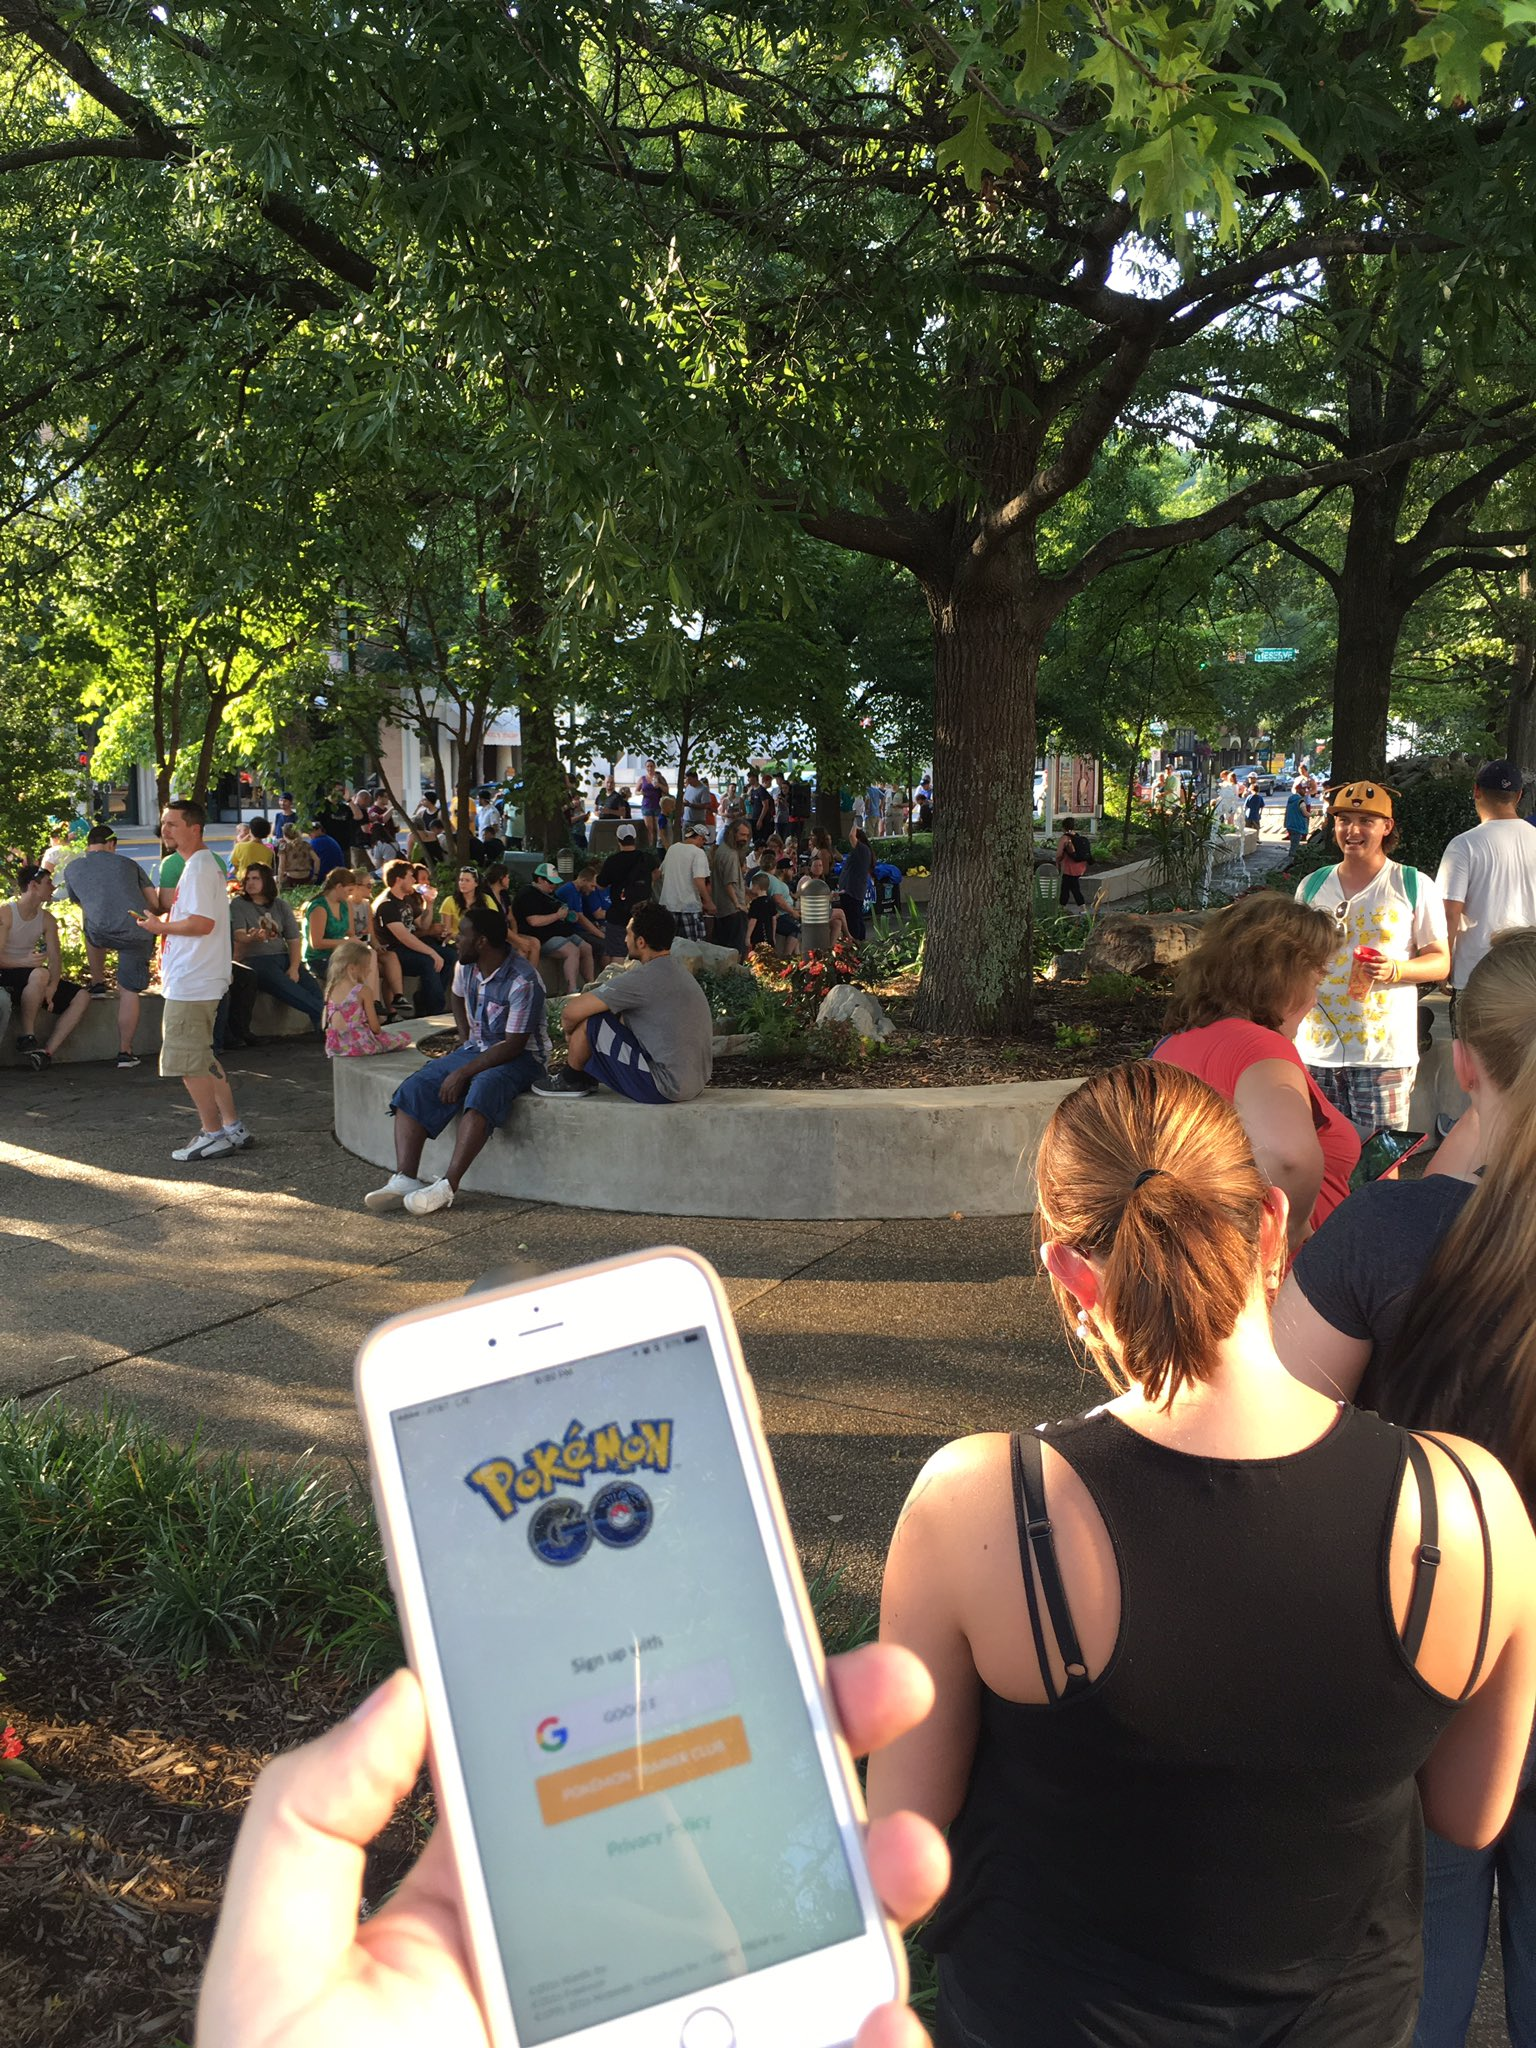 At the #PokemonGO event. Probably 500 here and servers don't work 😂😂 https://t.co/J9Exl7SNB6